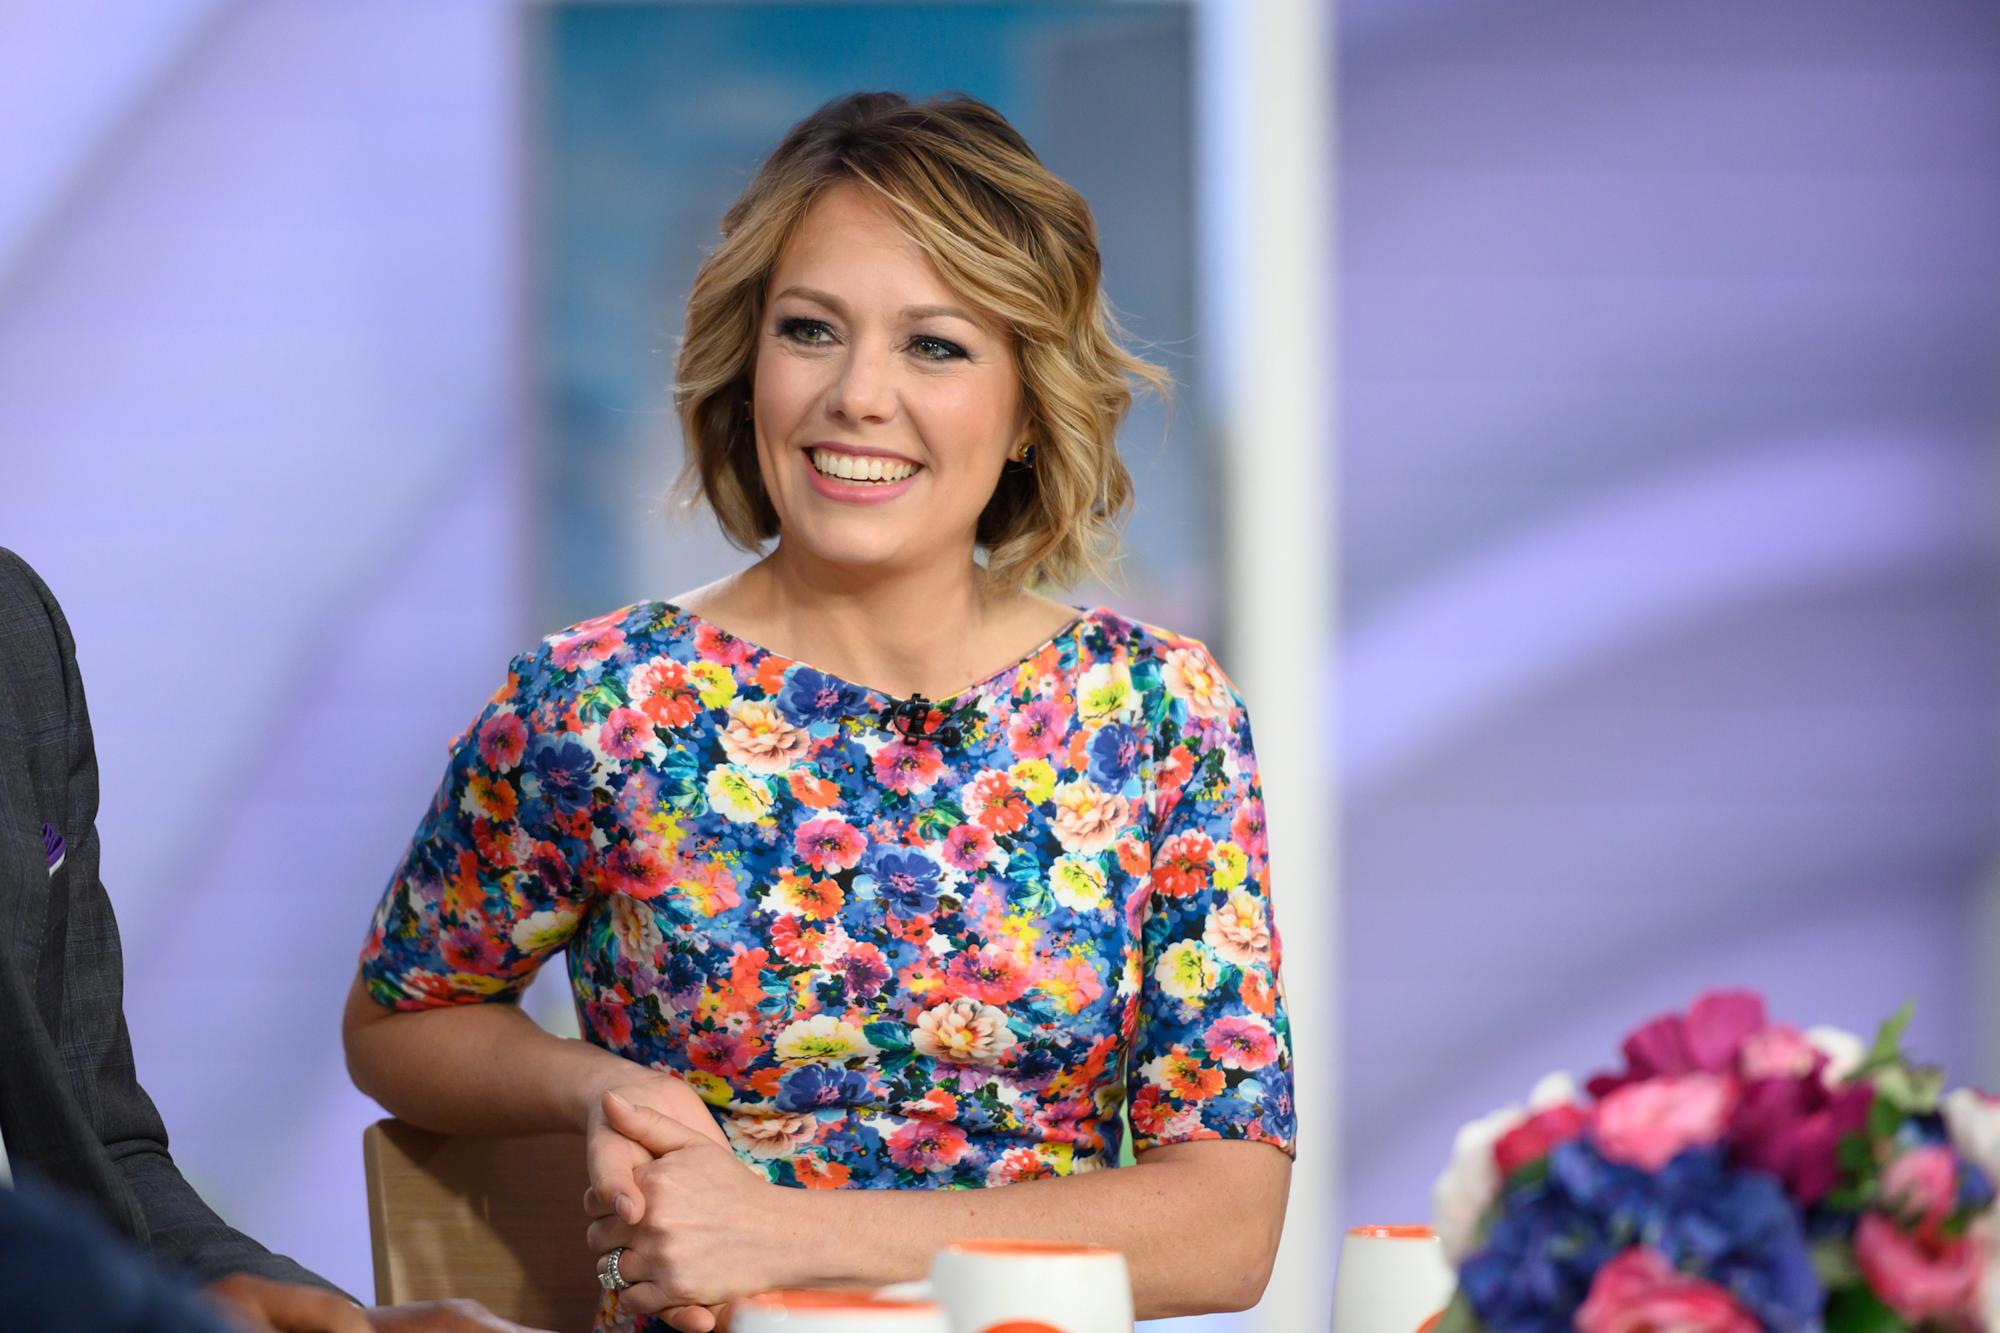 NBC meteorologist Dylan Dreyer shares her struggle to stop breastfeeding: 'It's a mindf**k'